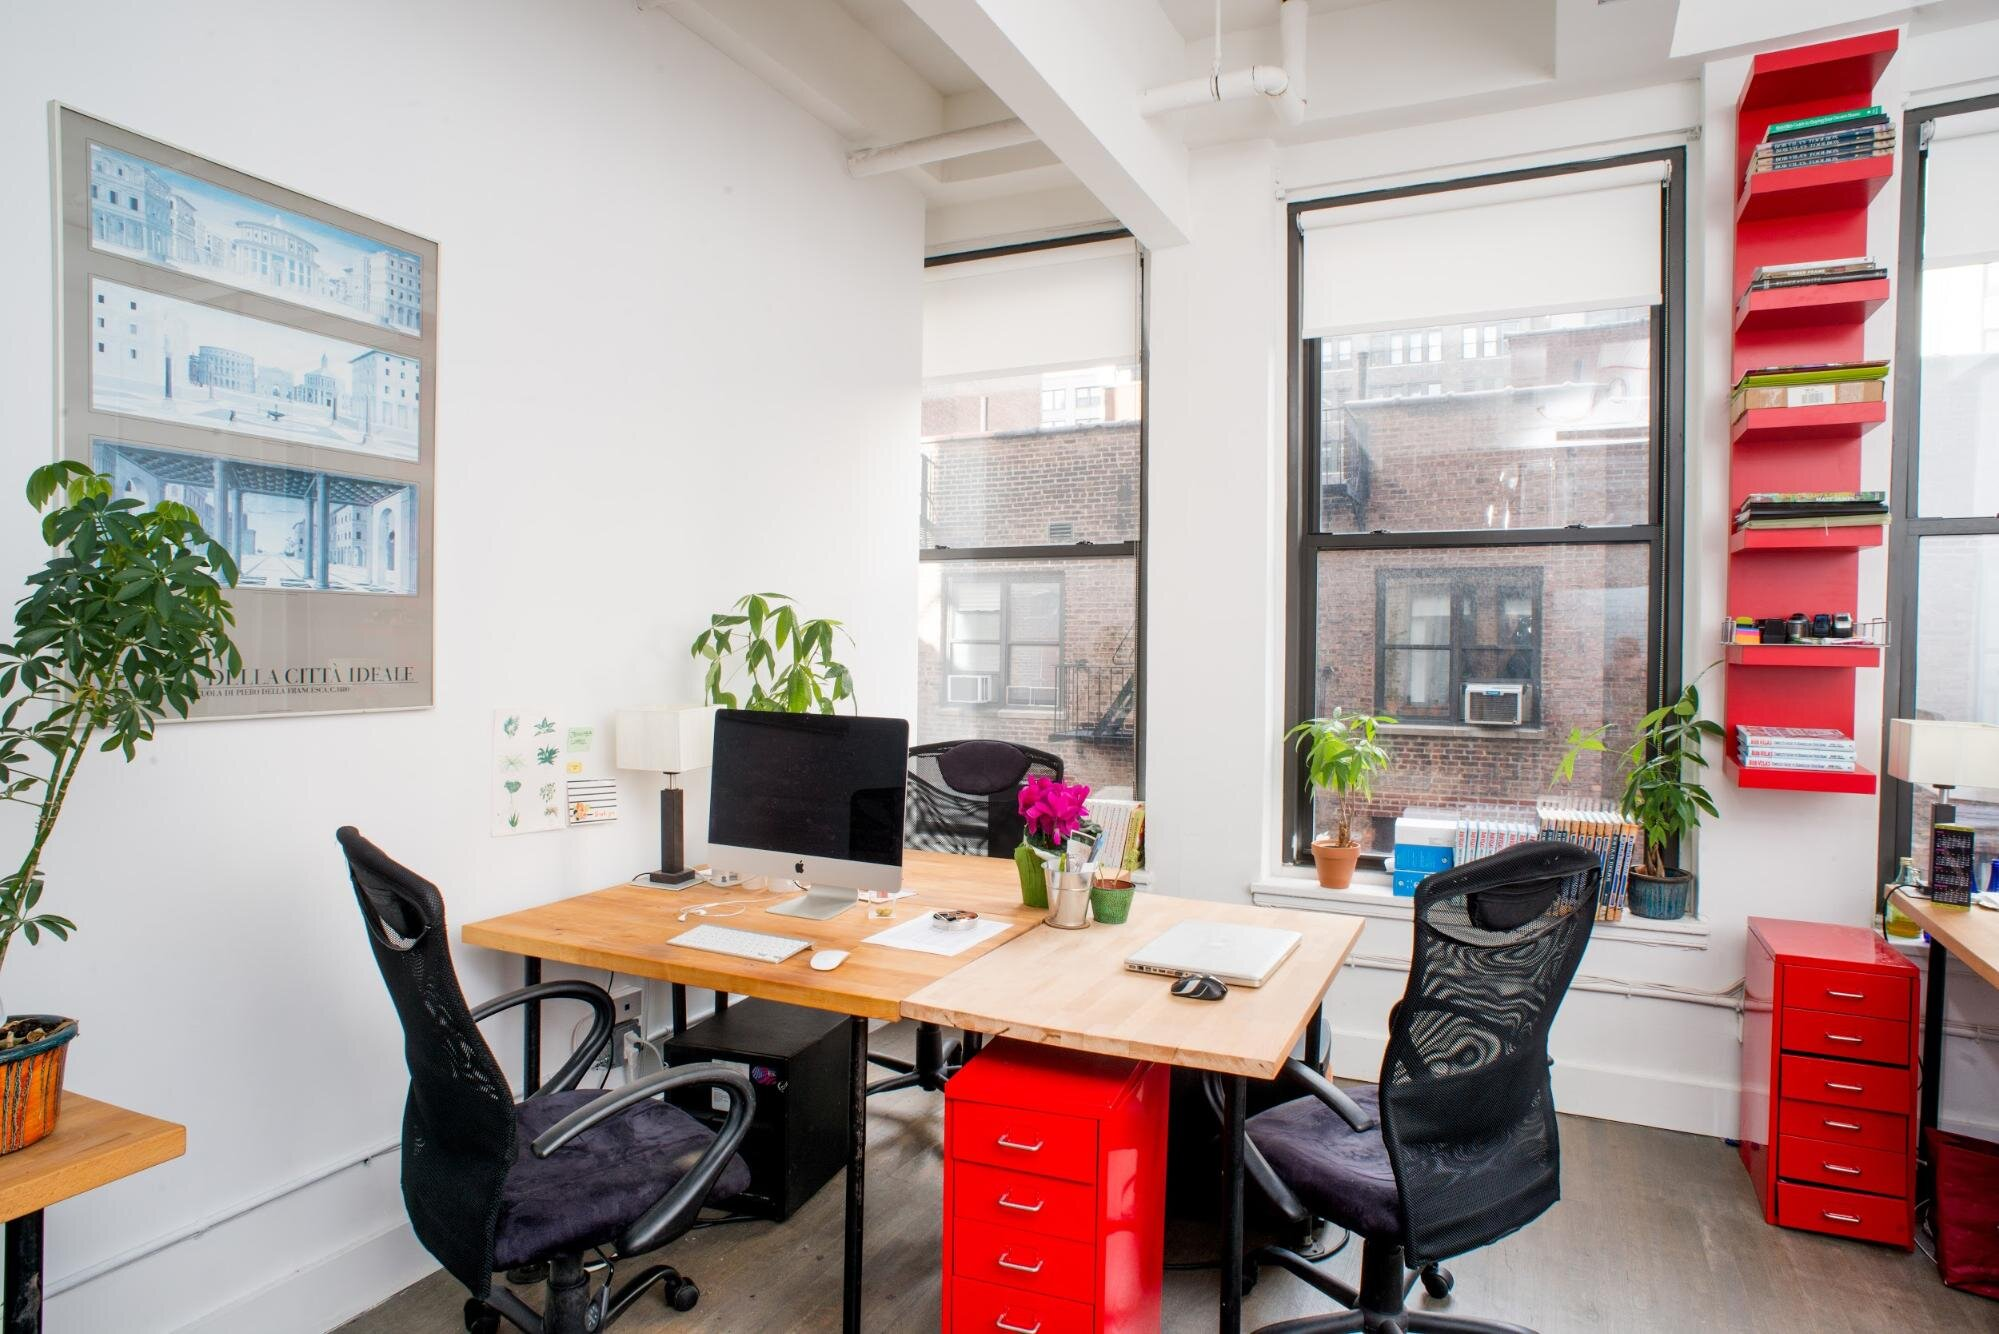 Inside a small office with a shared desk